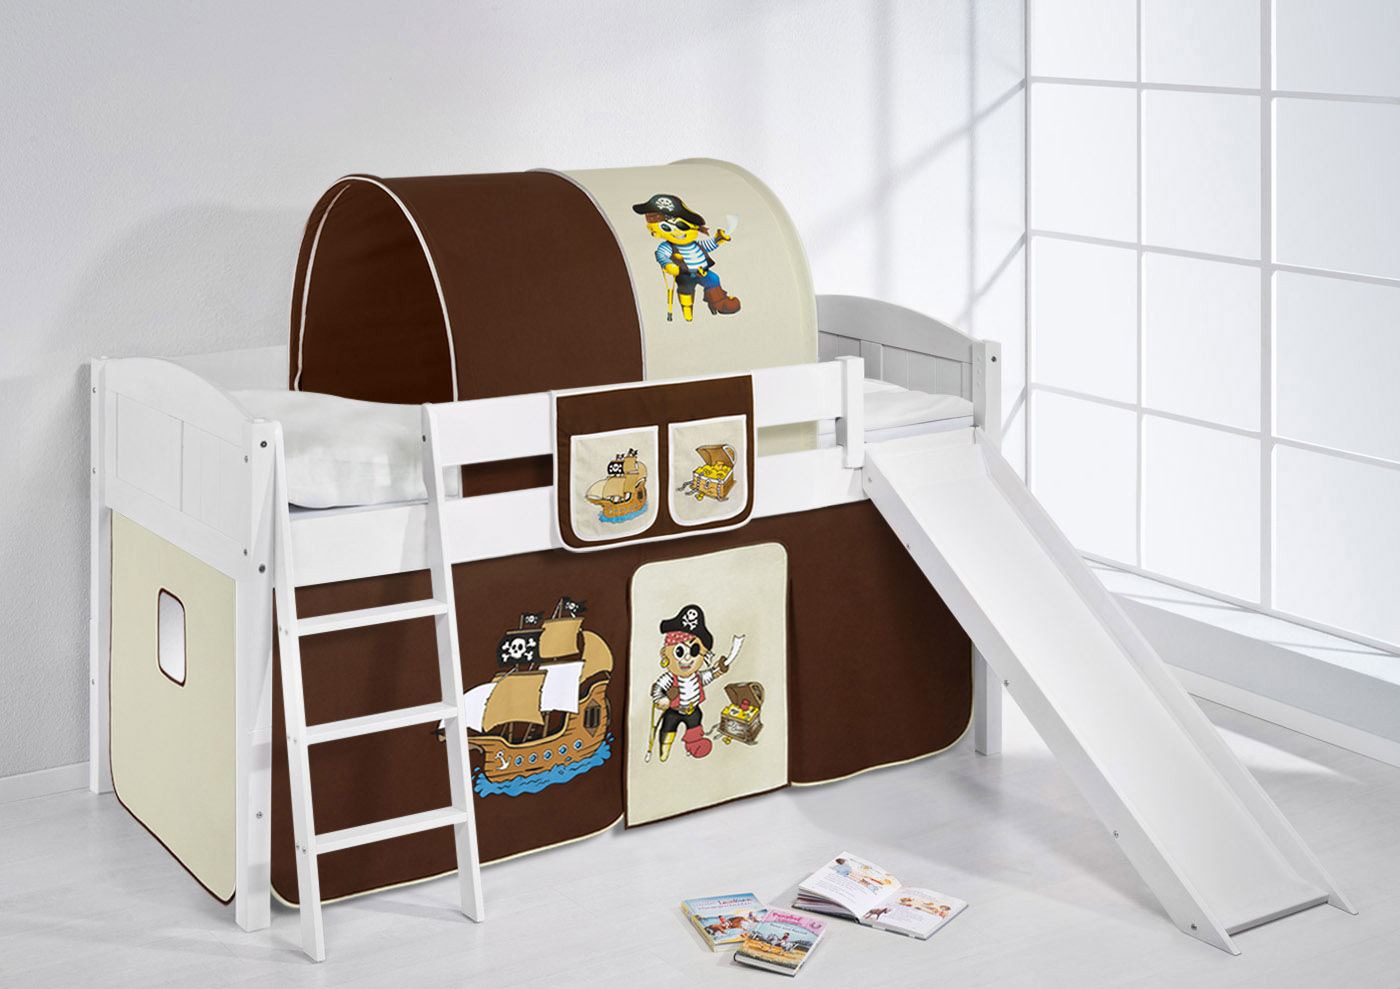 spielbett hochbett kinderbett kinder bett mit rutsche umbaubar einzelbett 4106 ebay. Black Bedroom Furniture Sets. Home Design Ideas